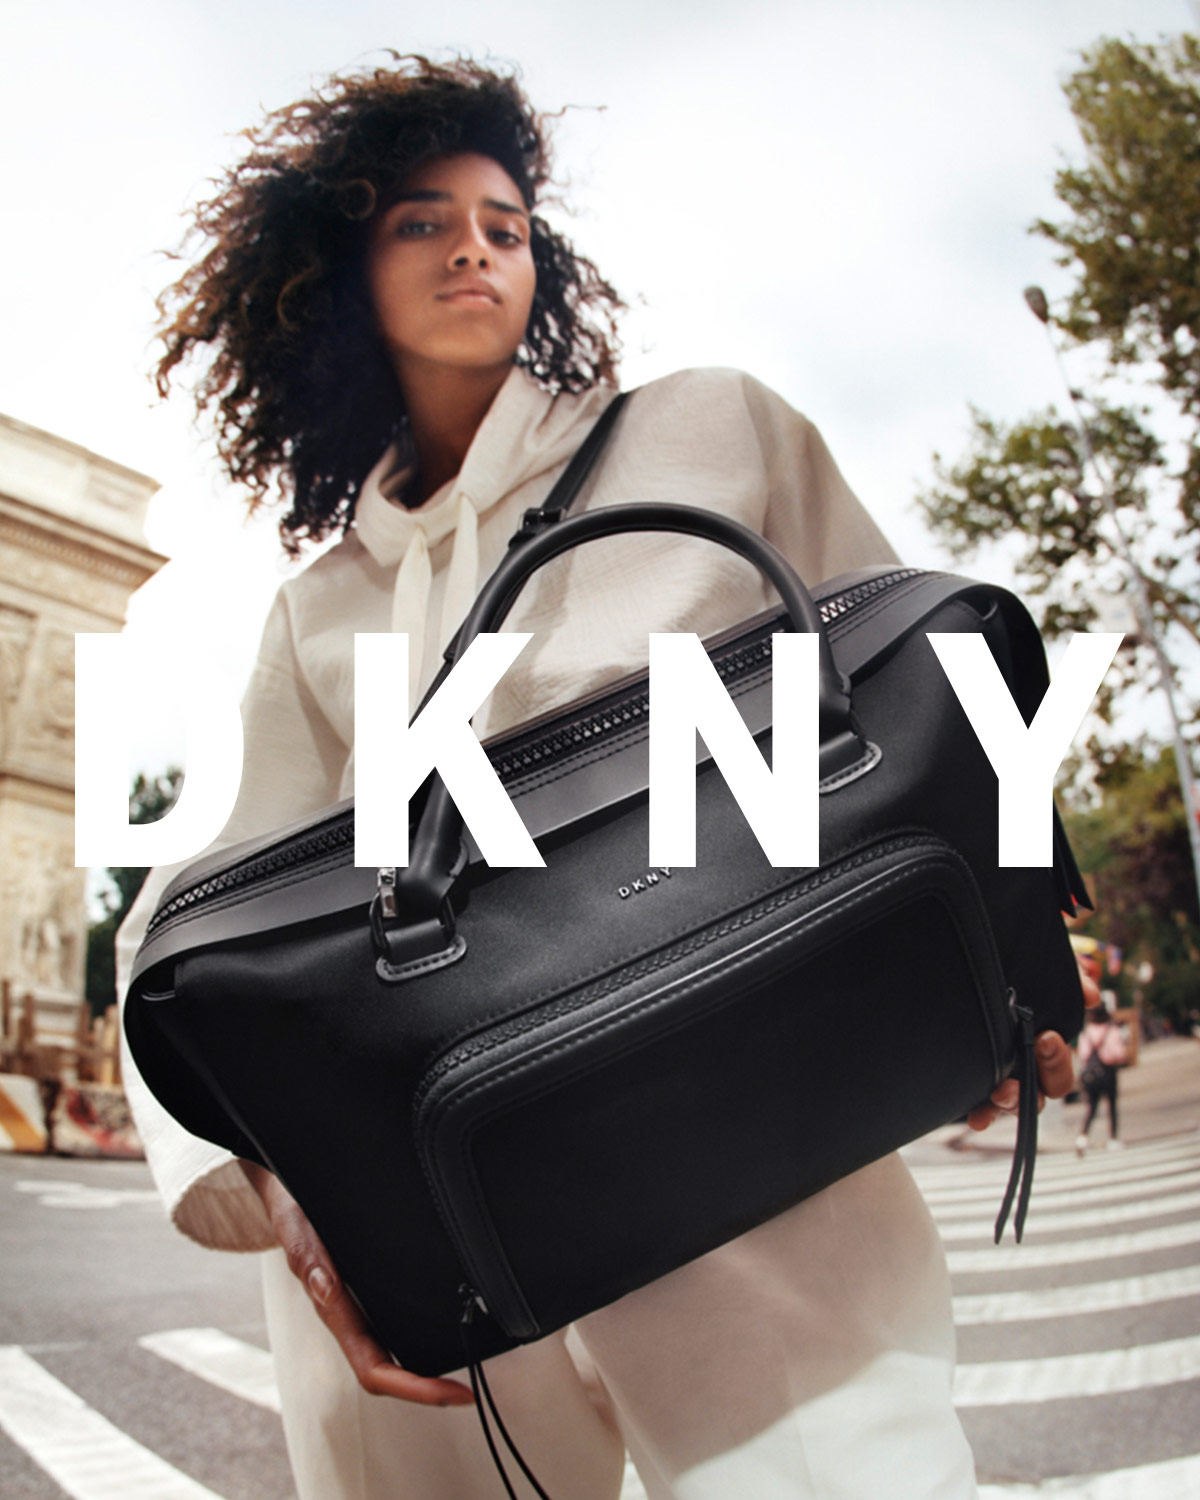 Imaan Hammam by Tyrone Lebon for DKNY Pre-Spring 2017